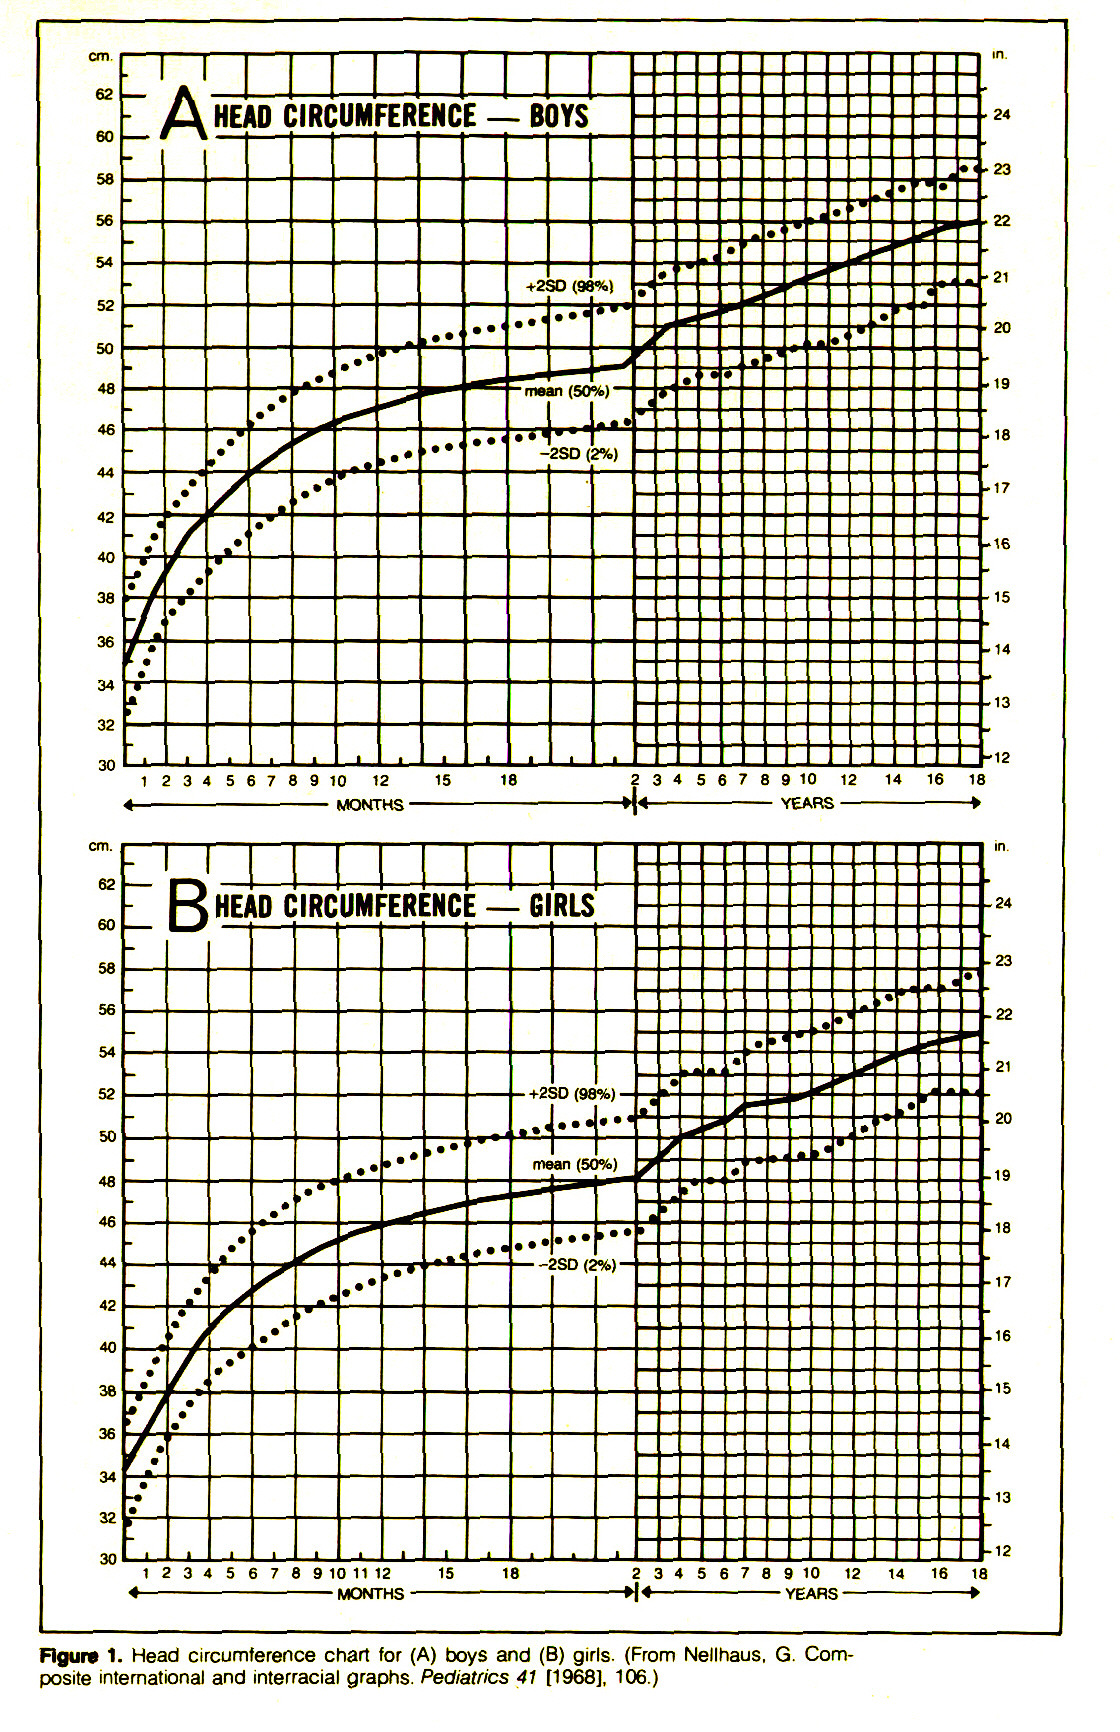 Figure 1. Head circumference chart for (A) boys and (B) girls. (From Nellhaus. G. Composite international and interracial graphs. Pediatrics 41 [1968], 106.)